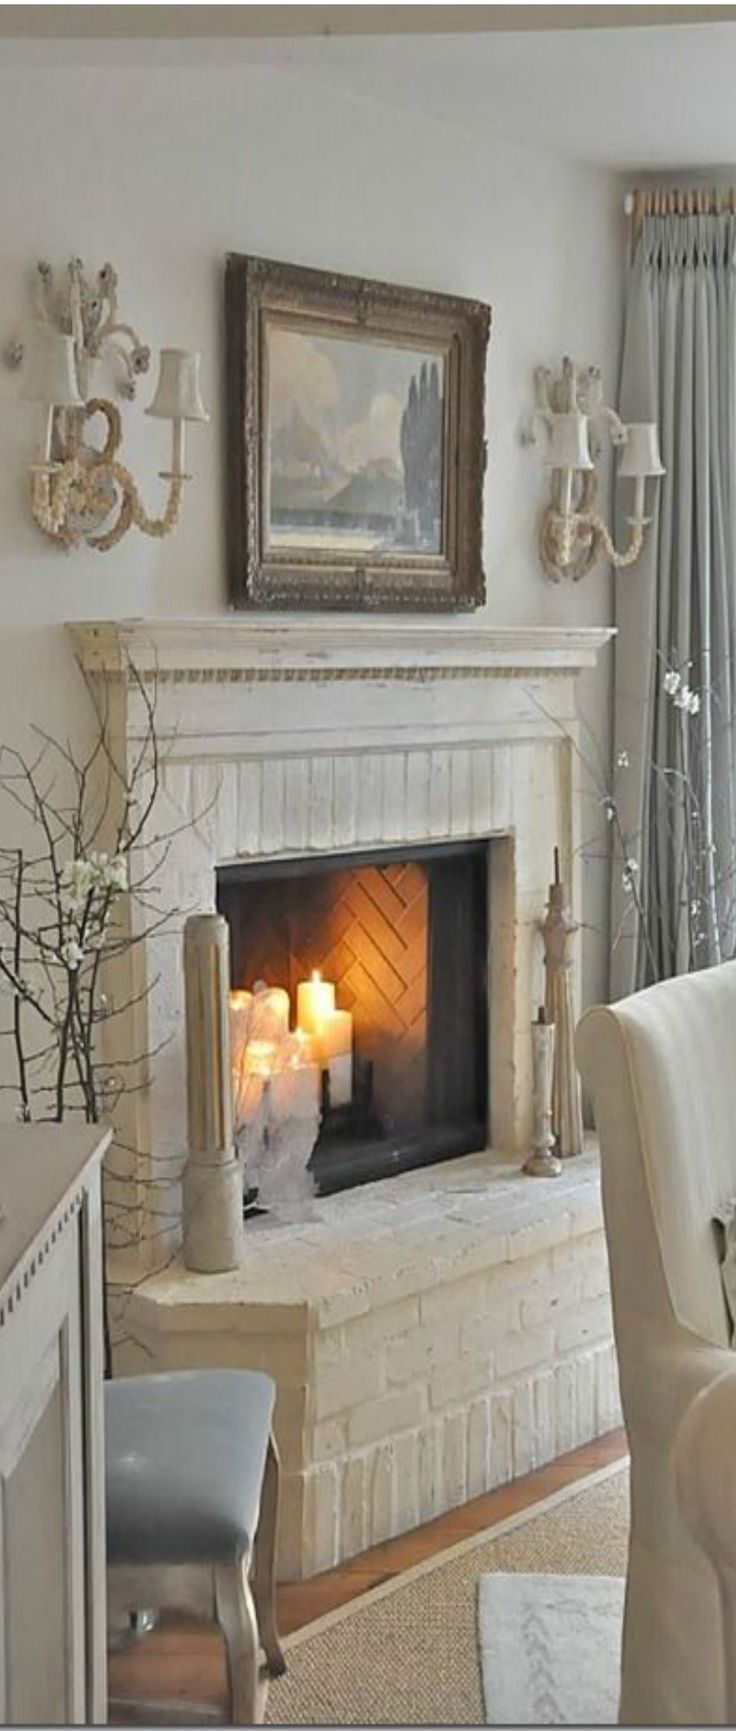 20 best fireplaces images on pinterest fireplaces coal gas and